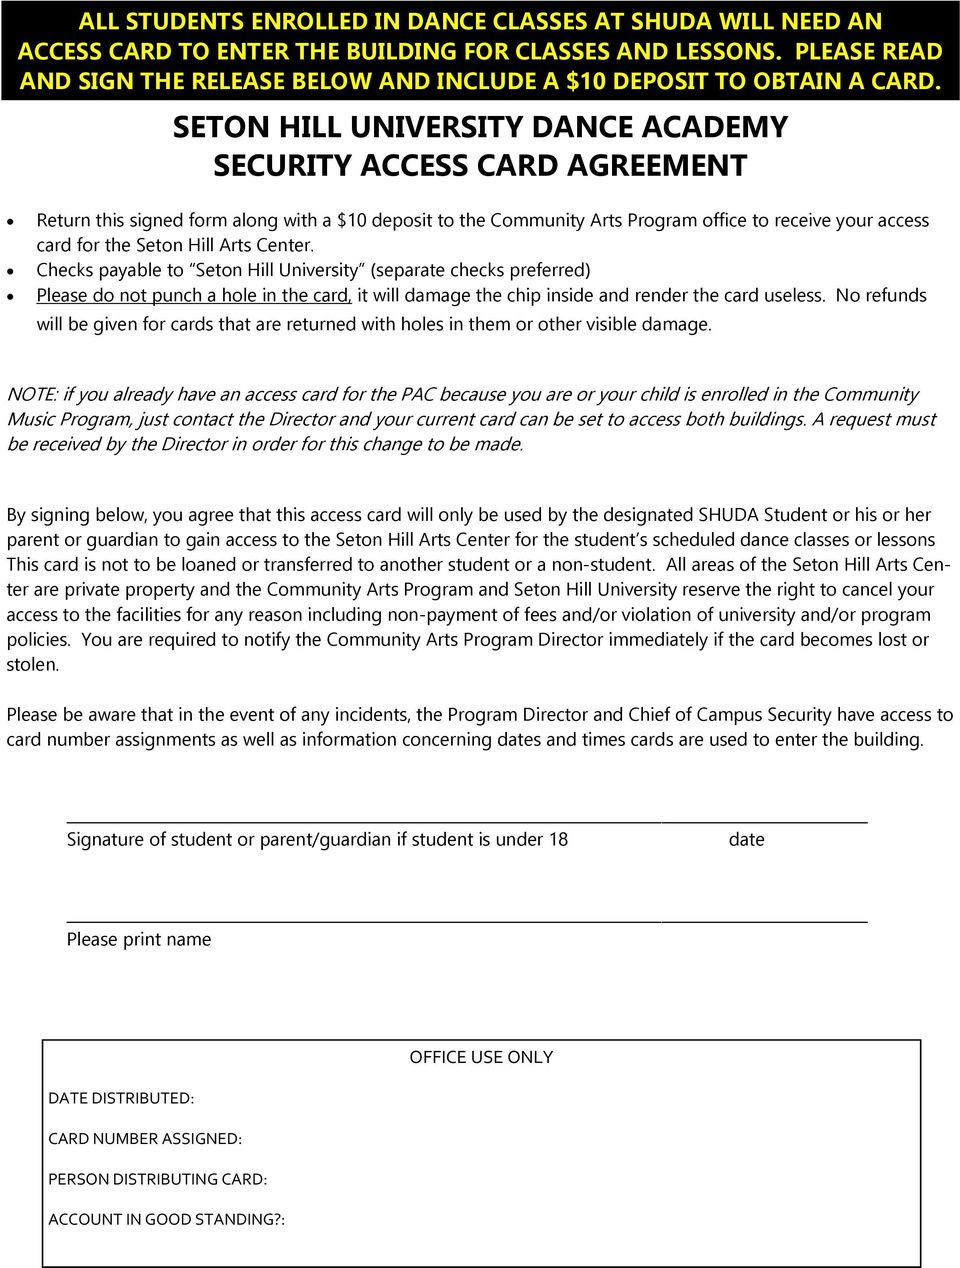 SETON HILL UNIVERSITY DANCE ACADEMY SECURITY ACCESS CARD AGREEMENT Return this signed form along with a $10 deposit to the Community Arts Program office to receive your access card for the Seton Hill